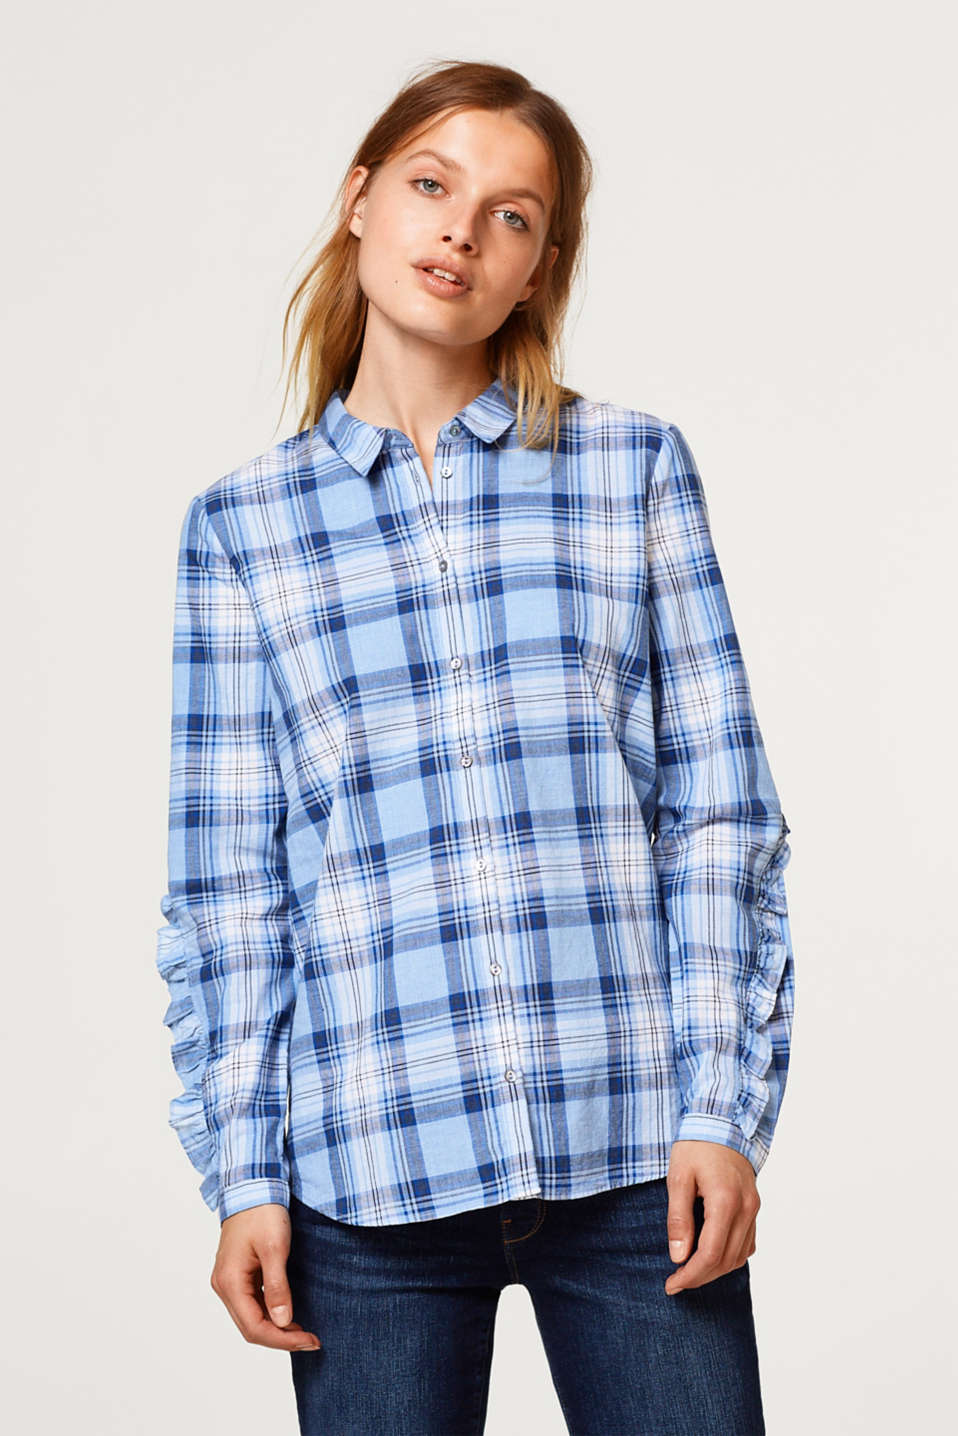 Esprit - Checked shirt with flounce details, 100% cotton